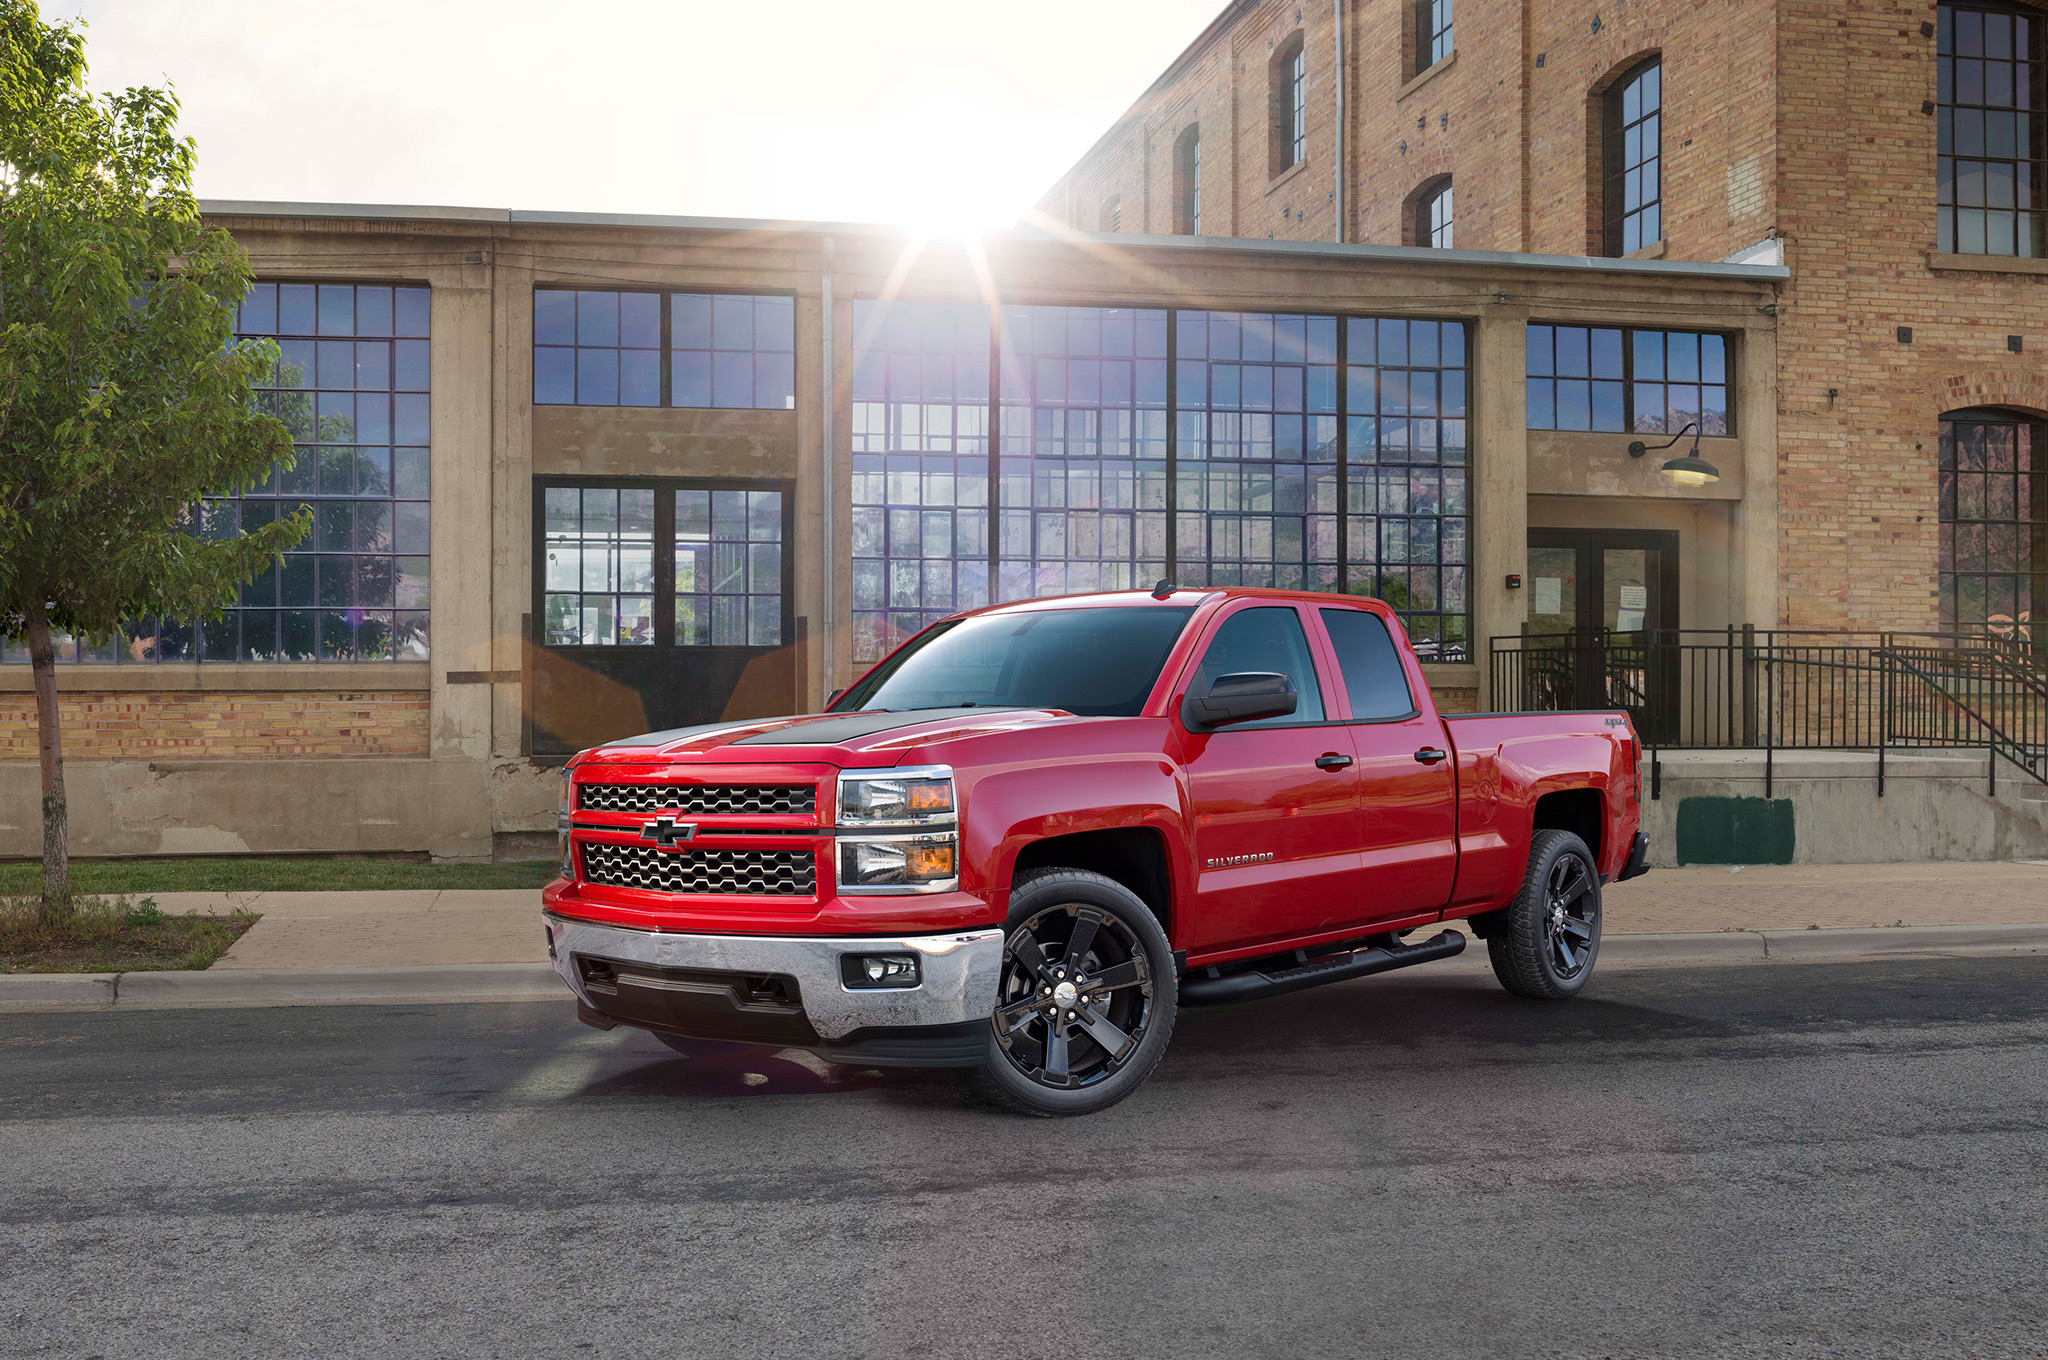 2015 Chevrolet Silverado Adds Rally Edition Appearance Package